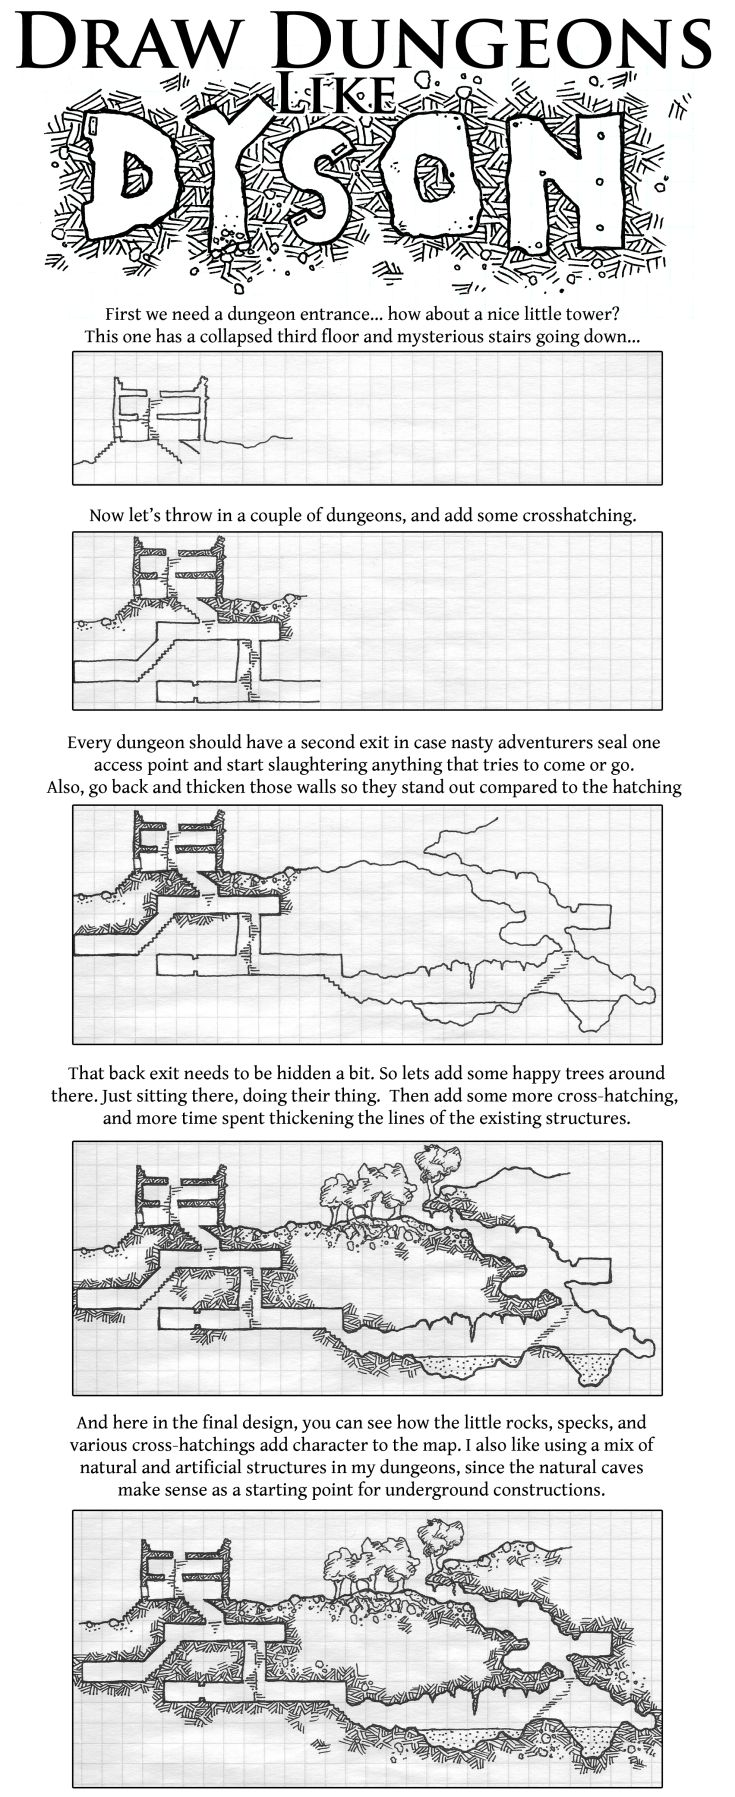 draw dungeons like dyson - Game Design Ideas